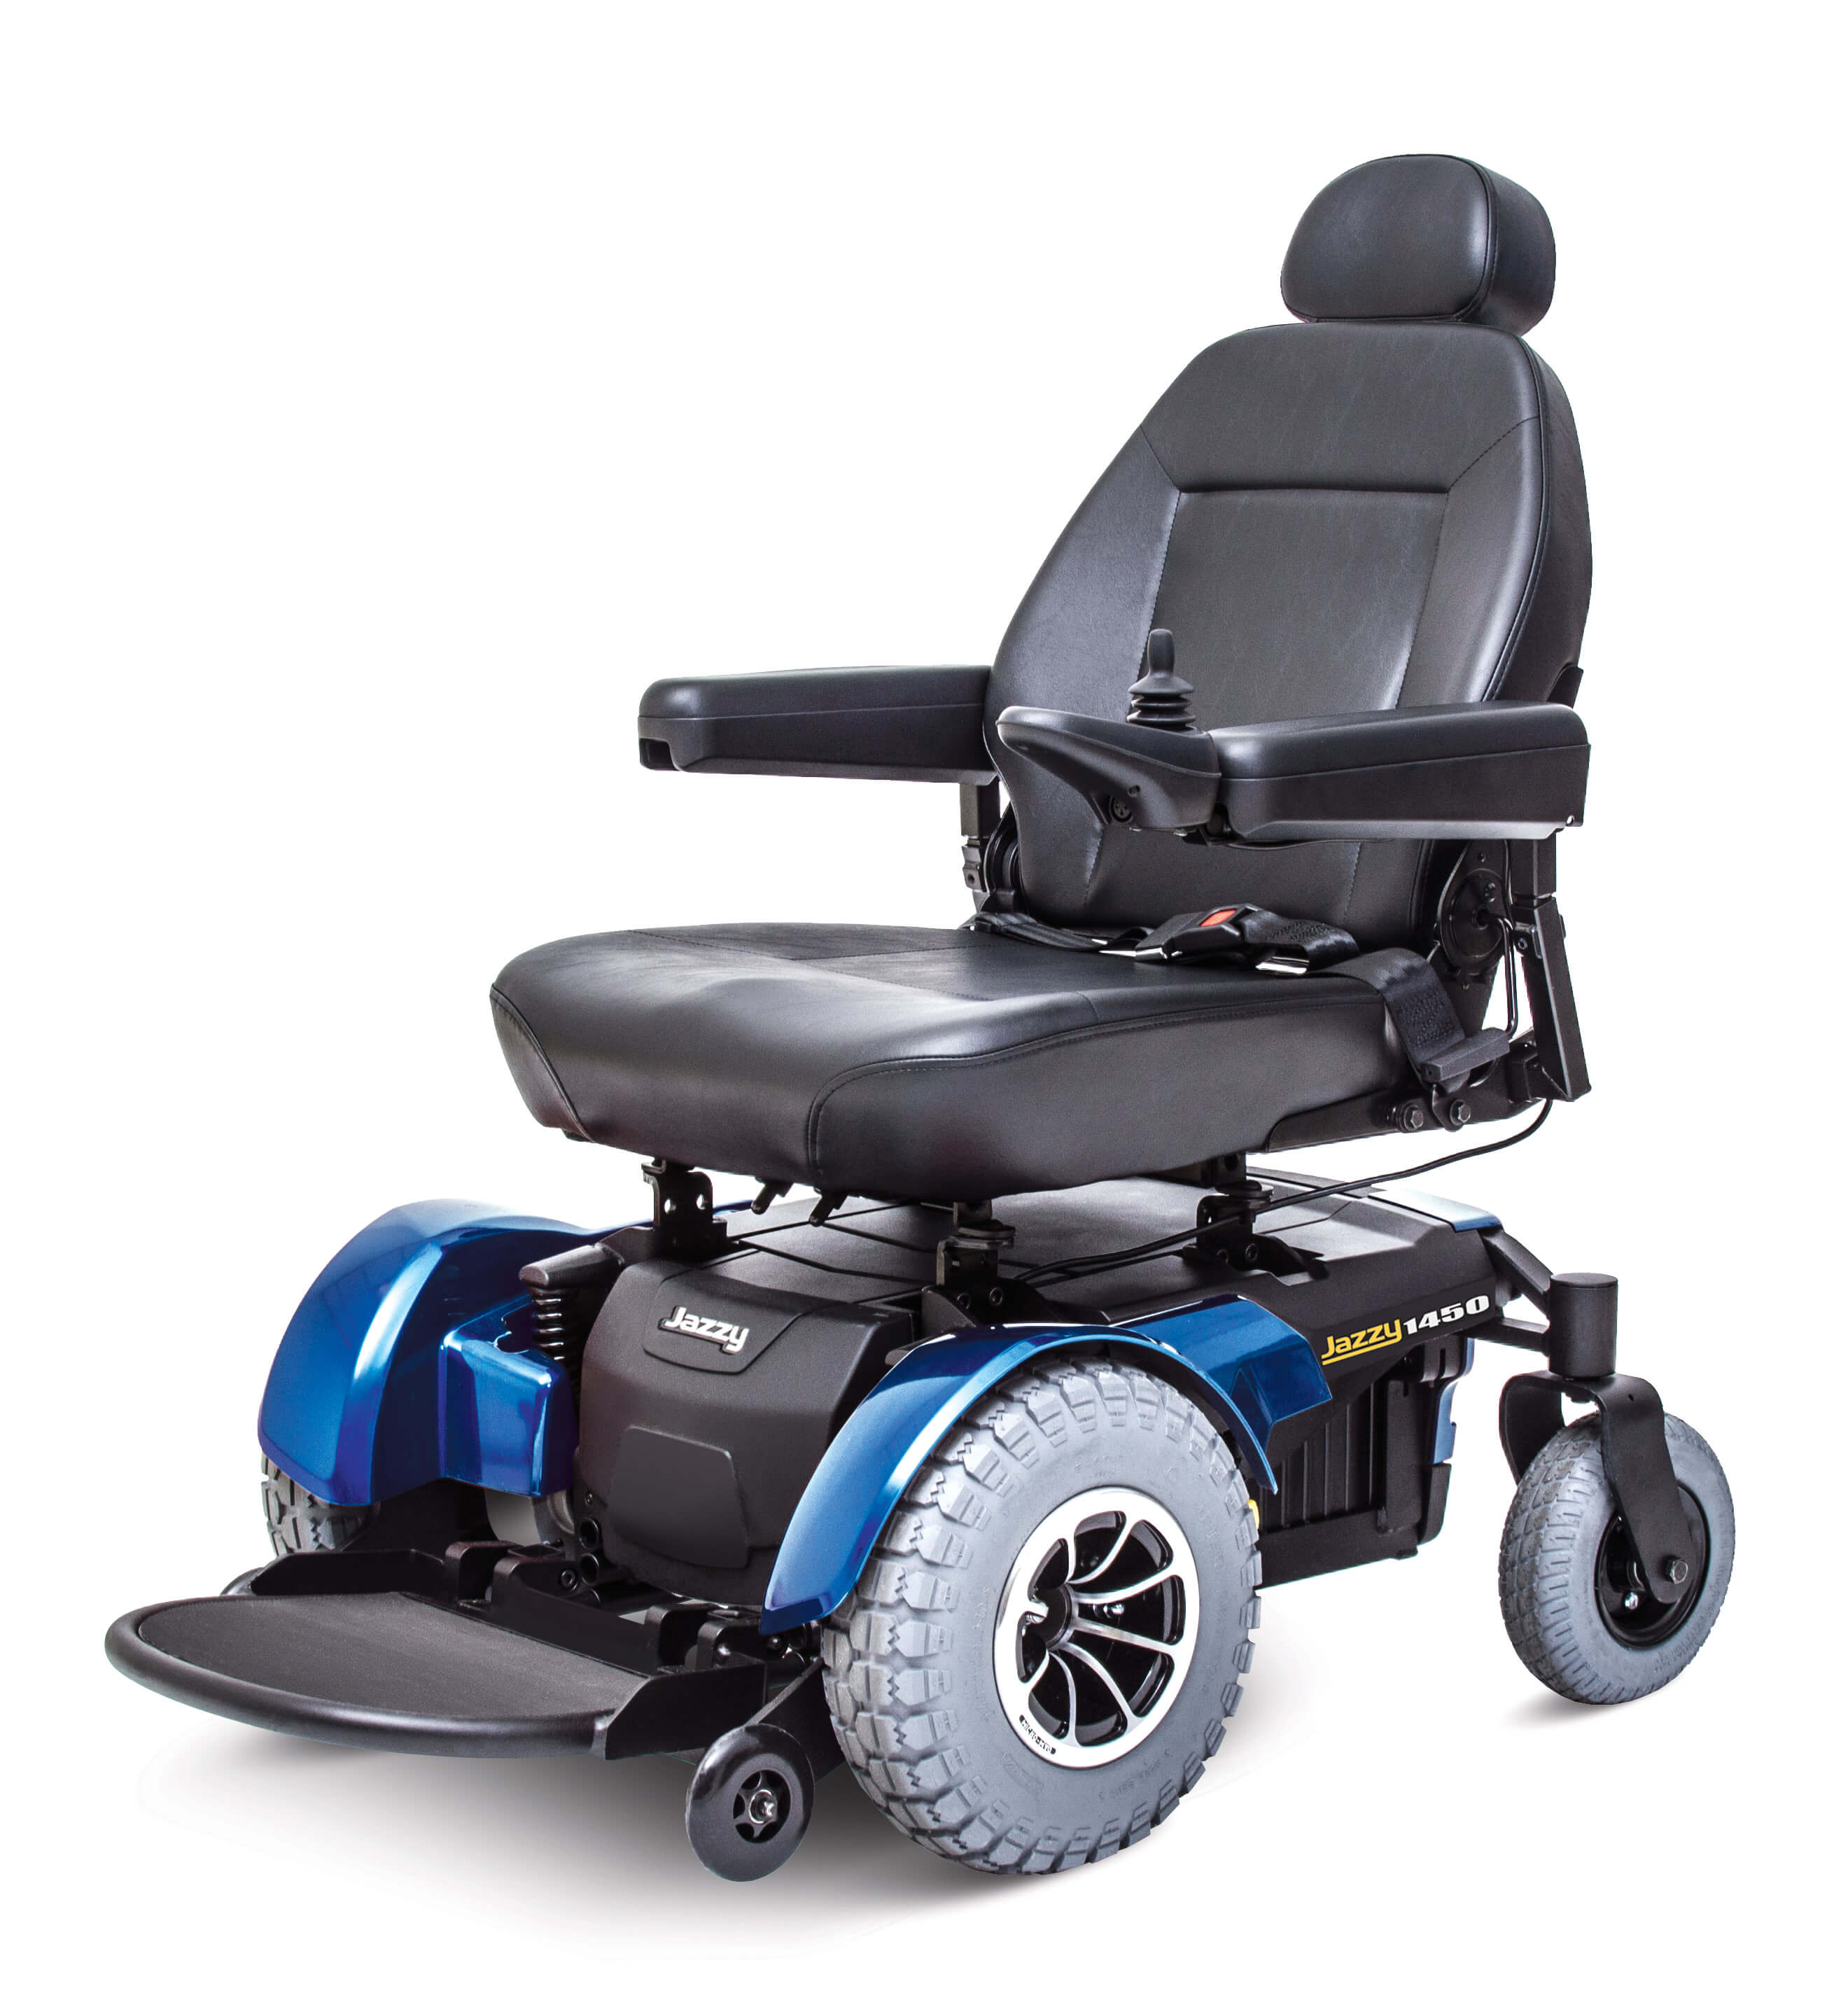 Pride Mobility Chairs Pride Jazzy 1450 Heavy Duty Power Wheelchair